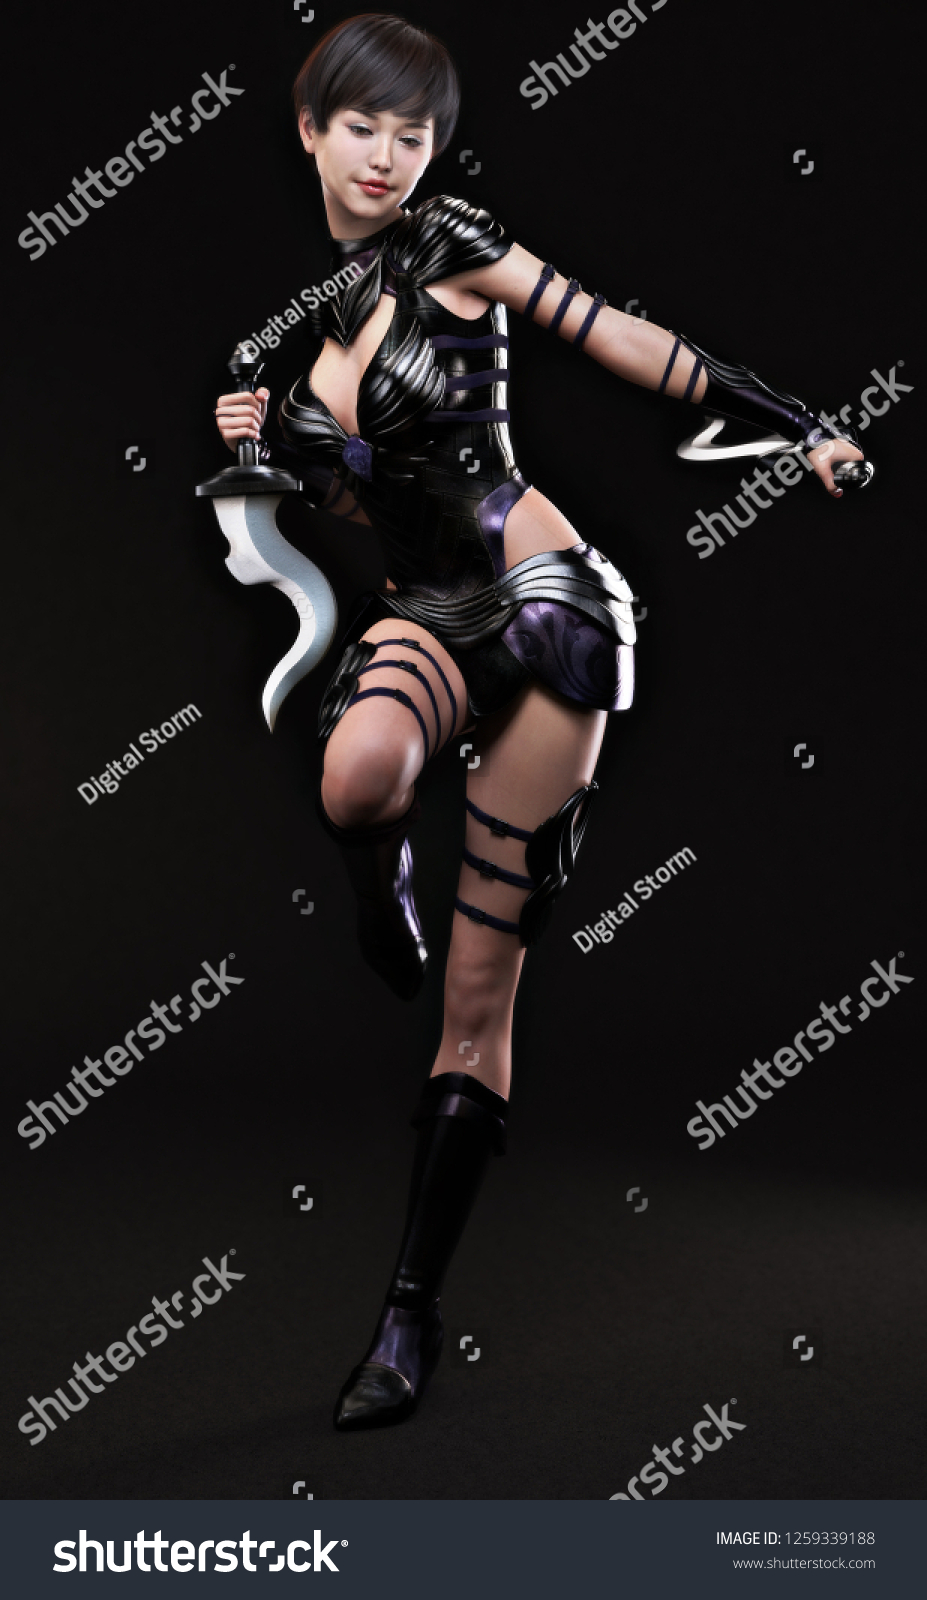 Asian female posing in an oriental warrior cosplay costume on a dark  background. 3d rendering